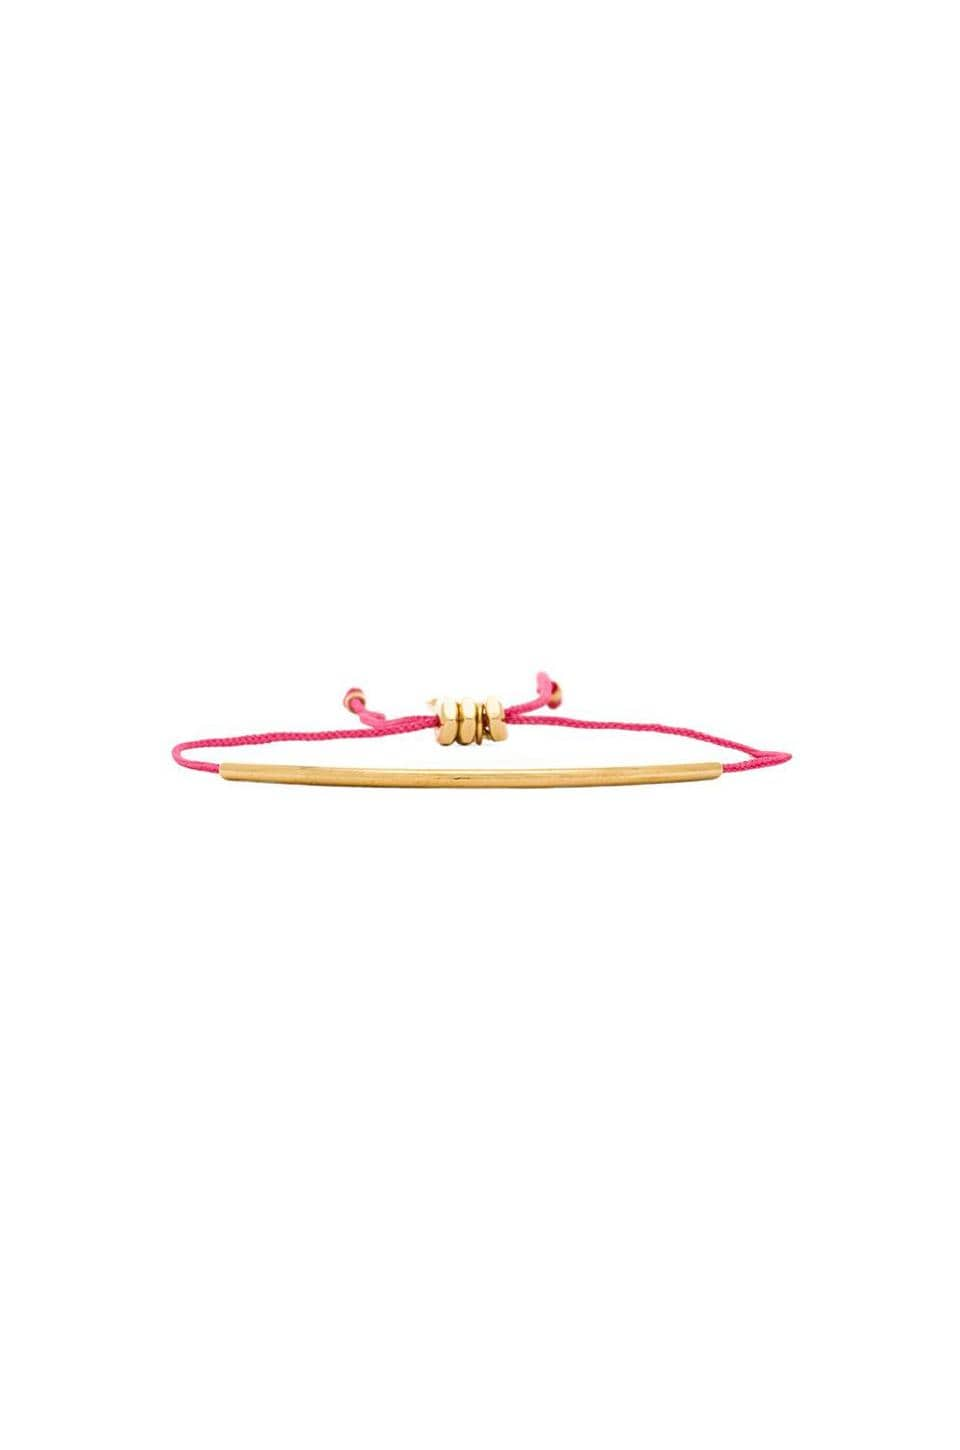 Marc by Marc Jacobs Grab & Go Tiny Metal Tube Friendship Bracelet in Punch Pink & Oro